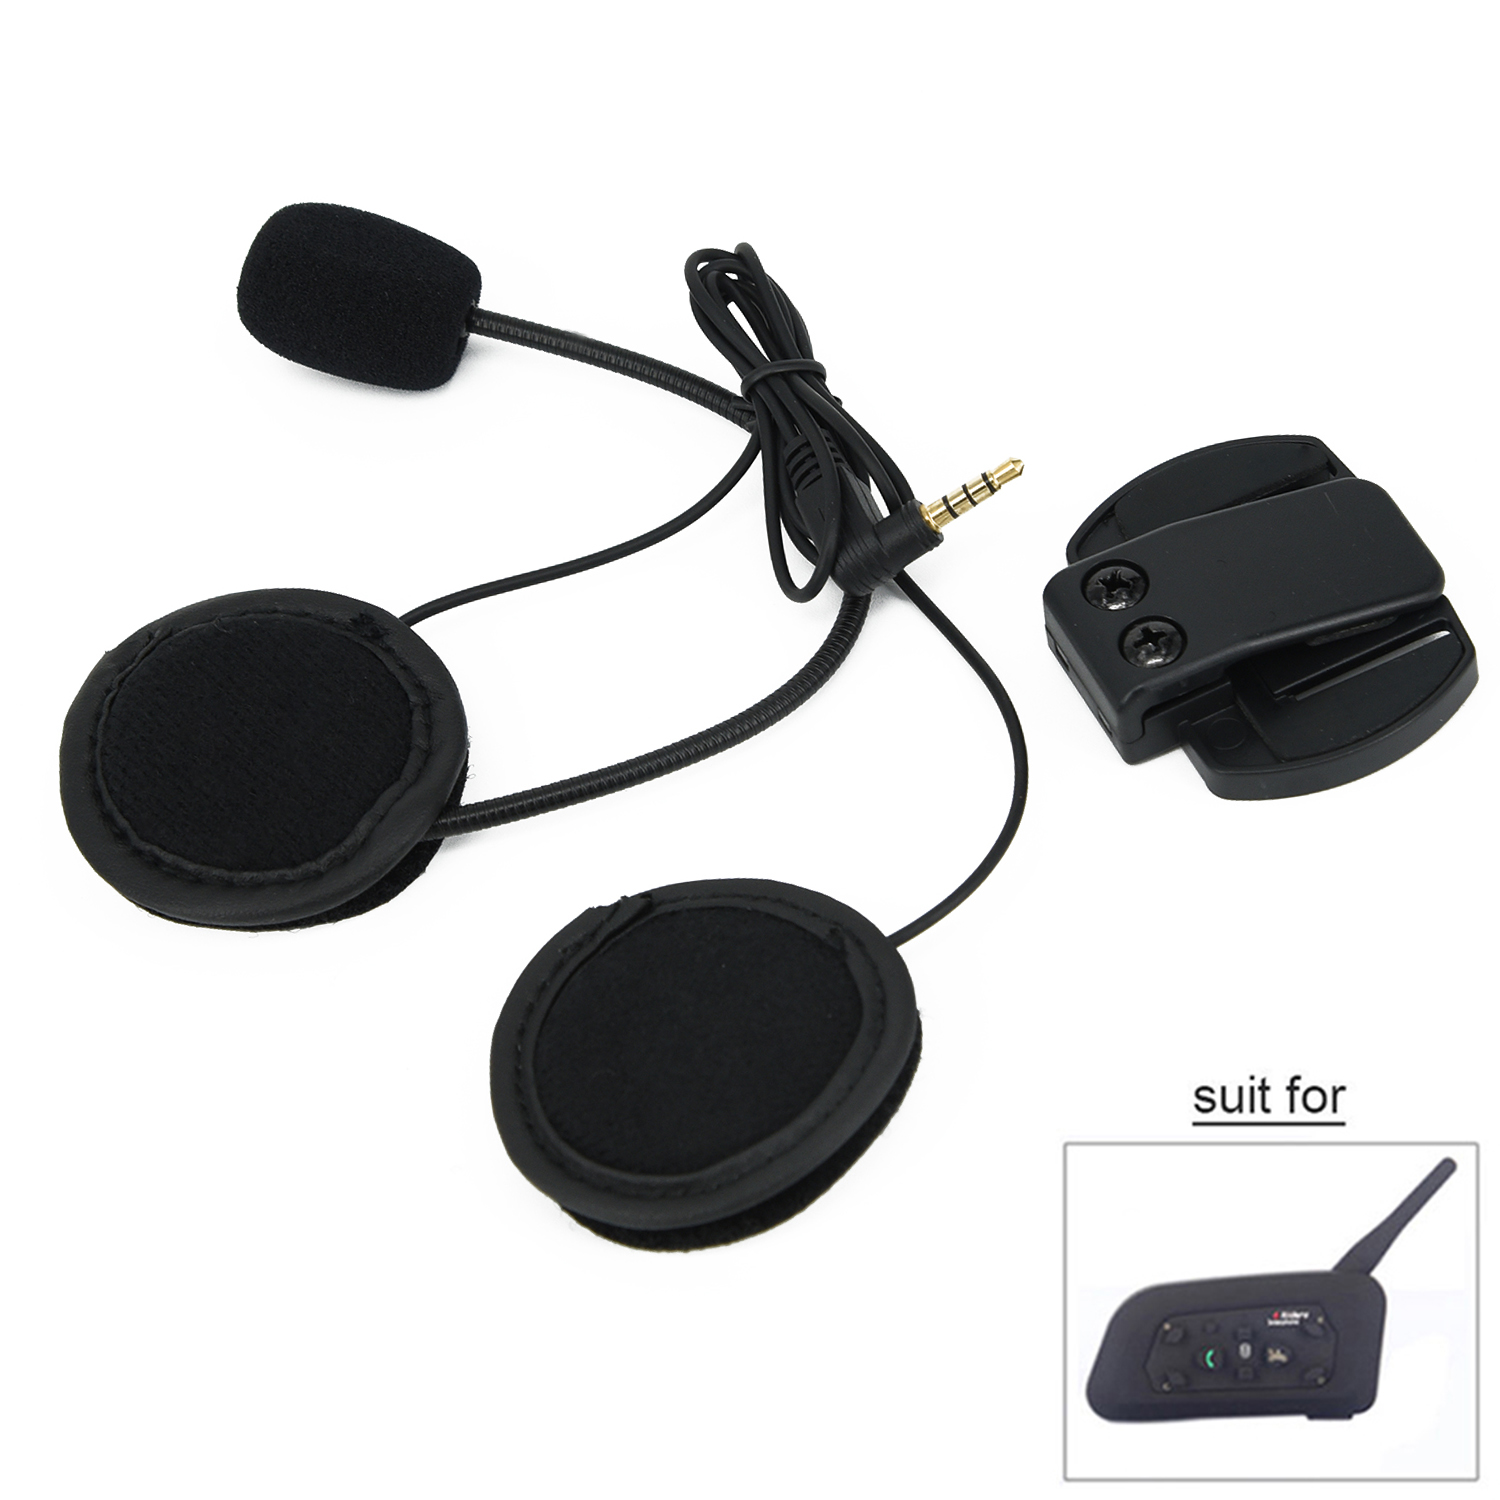 Speaker Headphone Earphone Helmet Headset V6&V4 Motorcycle Holder Sale Ideal Gift	black ABS 1.73 inch